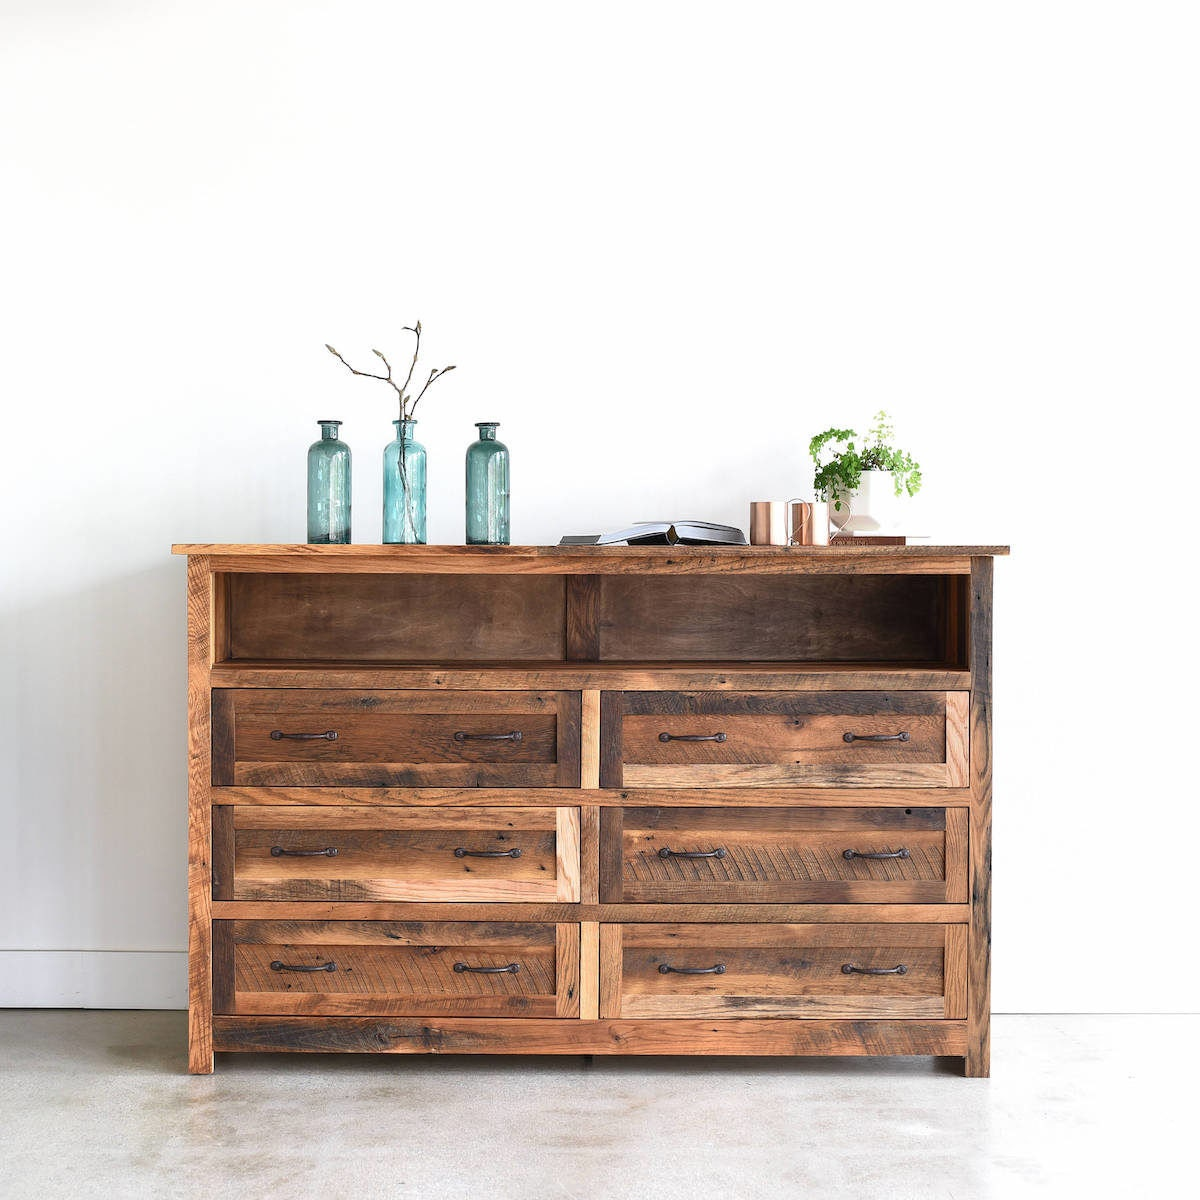 Reclaimed wood dresser from What WE Make